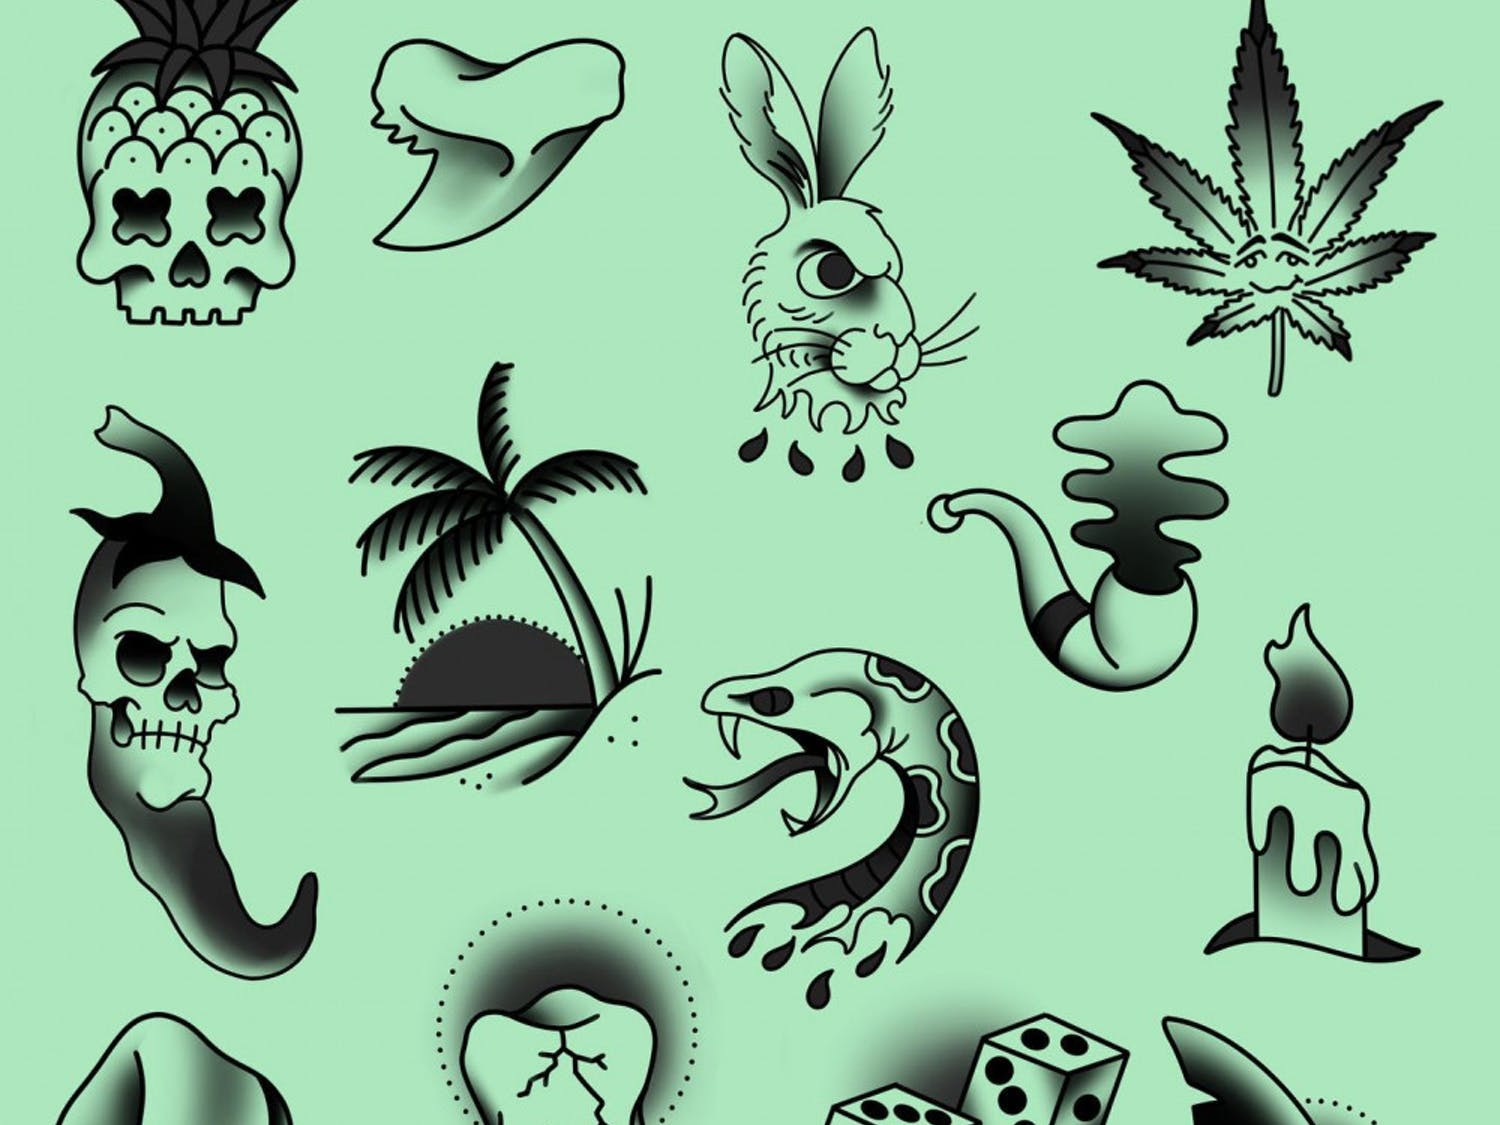 For this Friday the 13th, Oasis Tattoo Collective is offering $31 tattoos with a $9 tip fromtwo flash sheets with 29 designs.